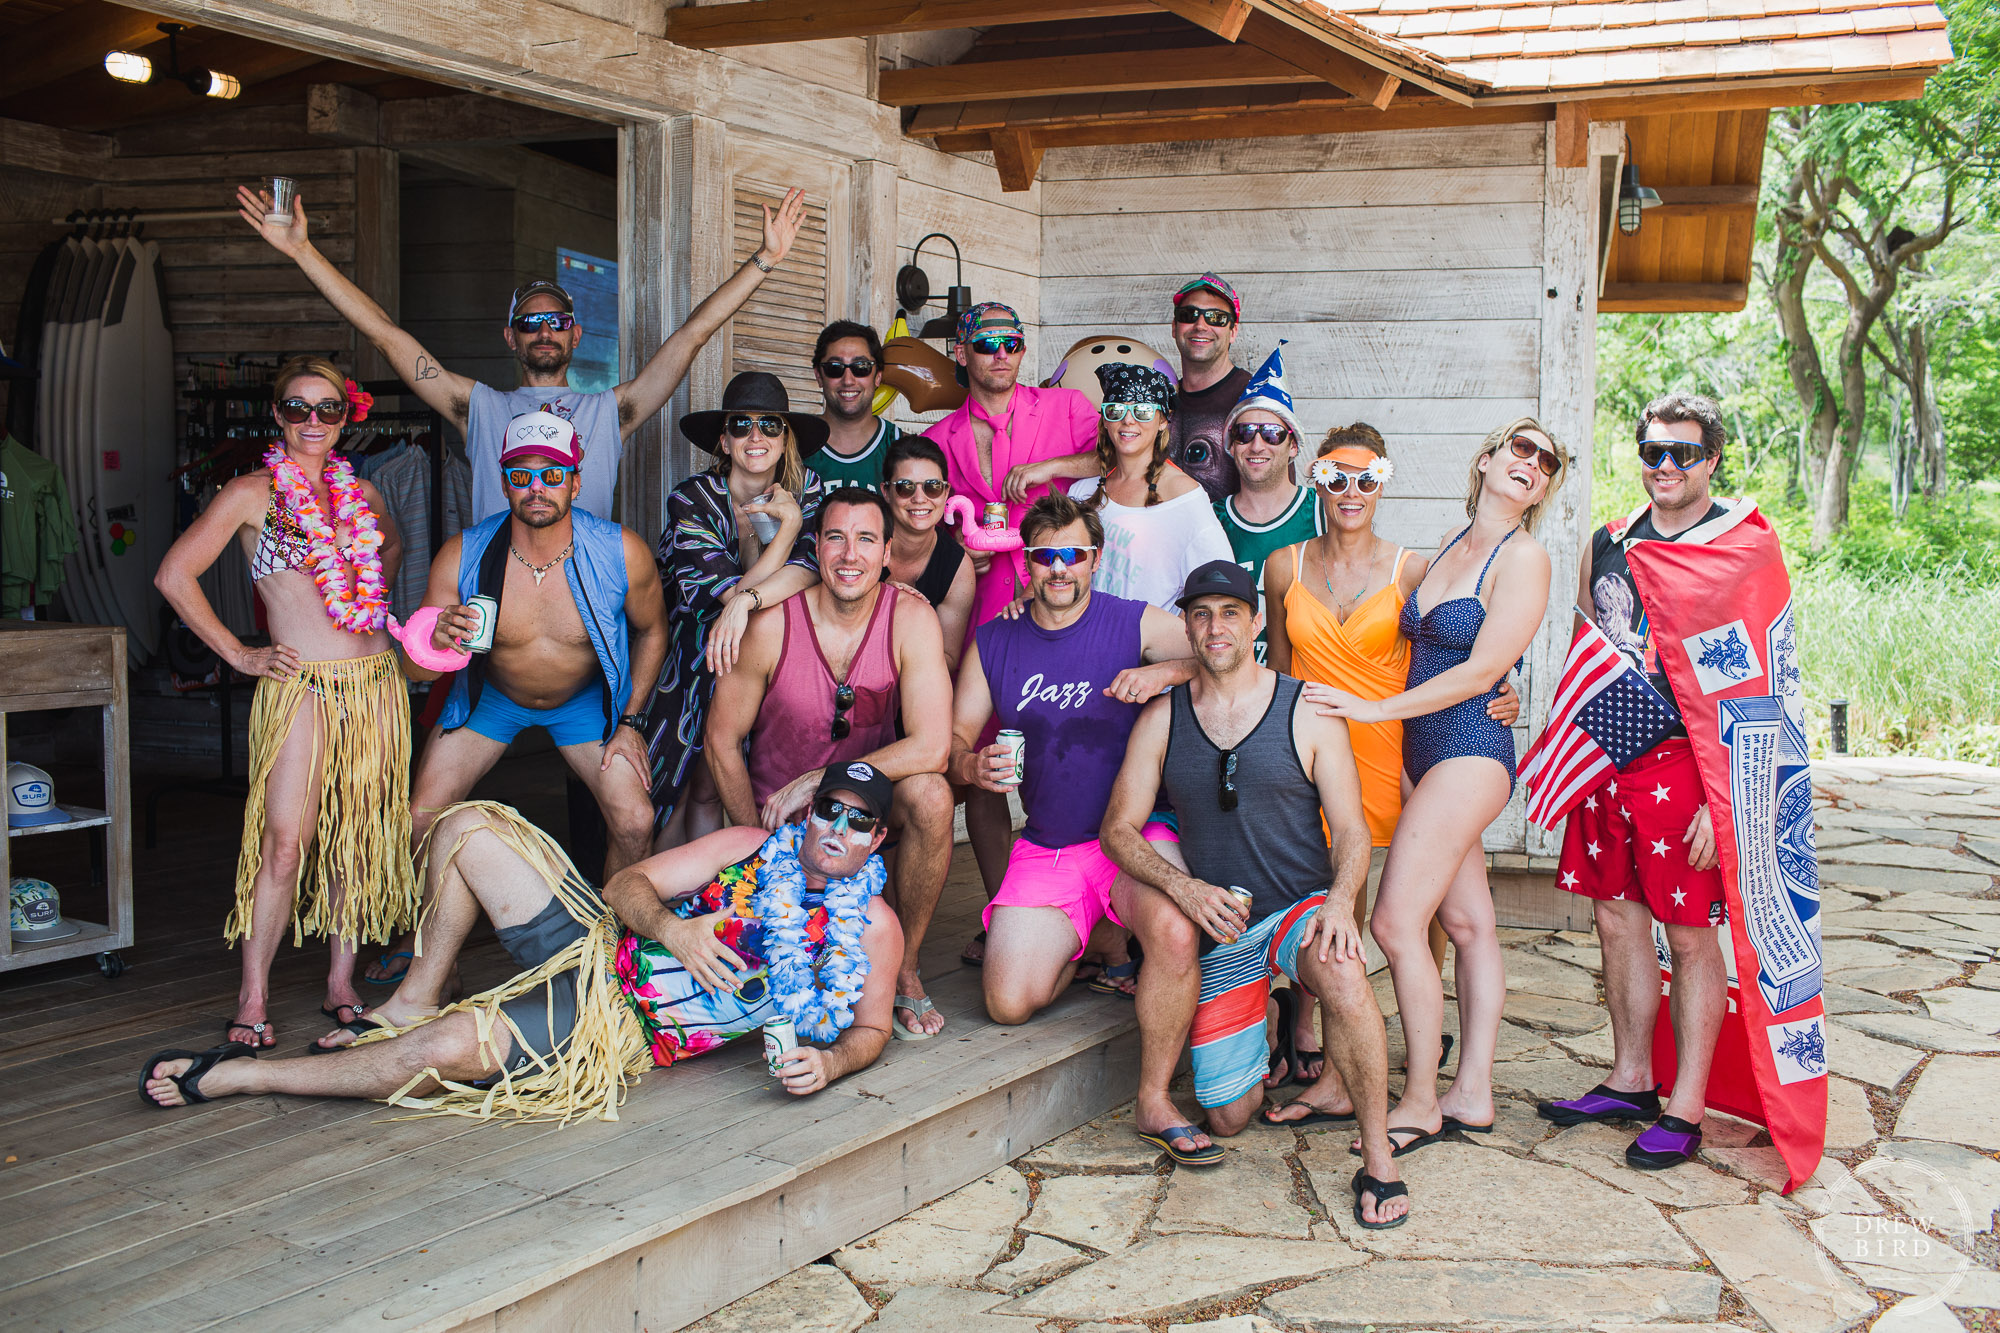 Group of people in costume for a theme beach at playa los perros. Beach welcome party. Rancho Santana Nicaragua destination wedding photographer Drew Bird.